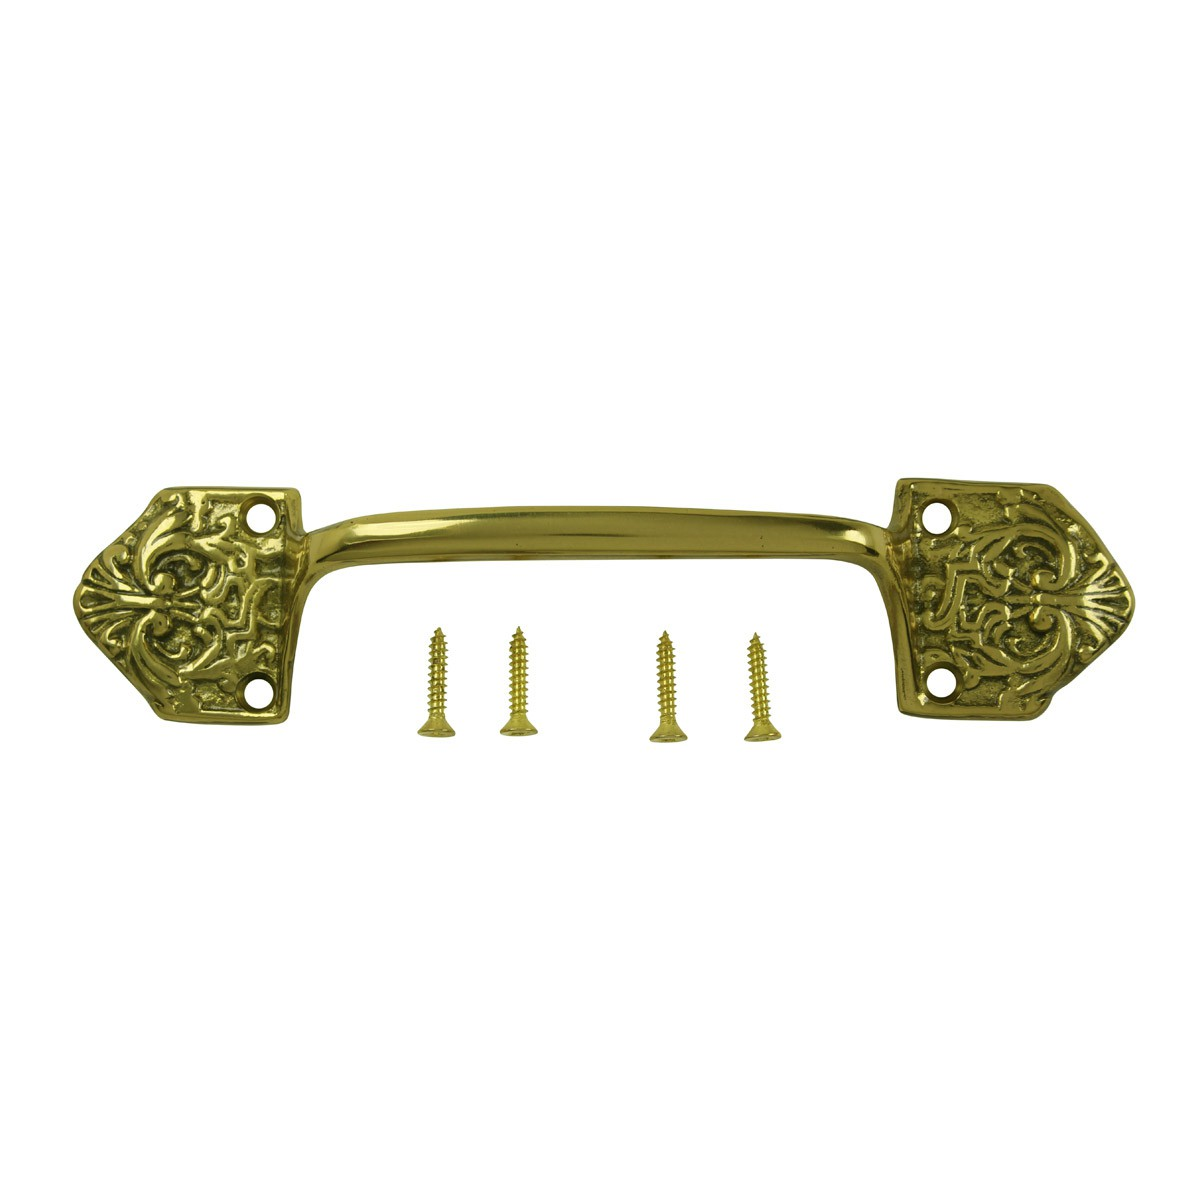 Ornate Cabinet Pull Drawer Handle Heavy Solid Brass